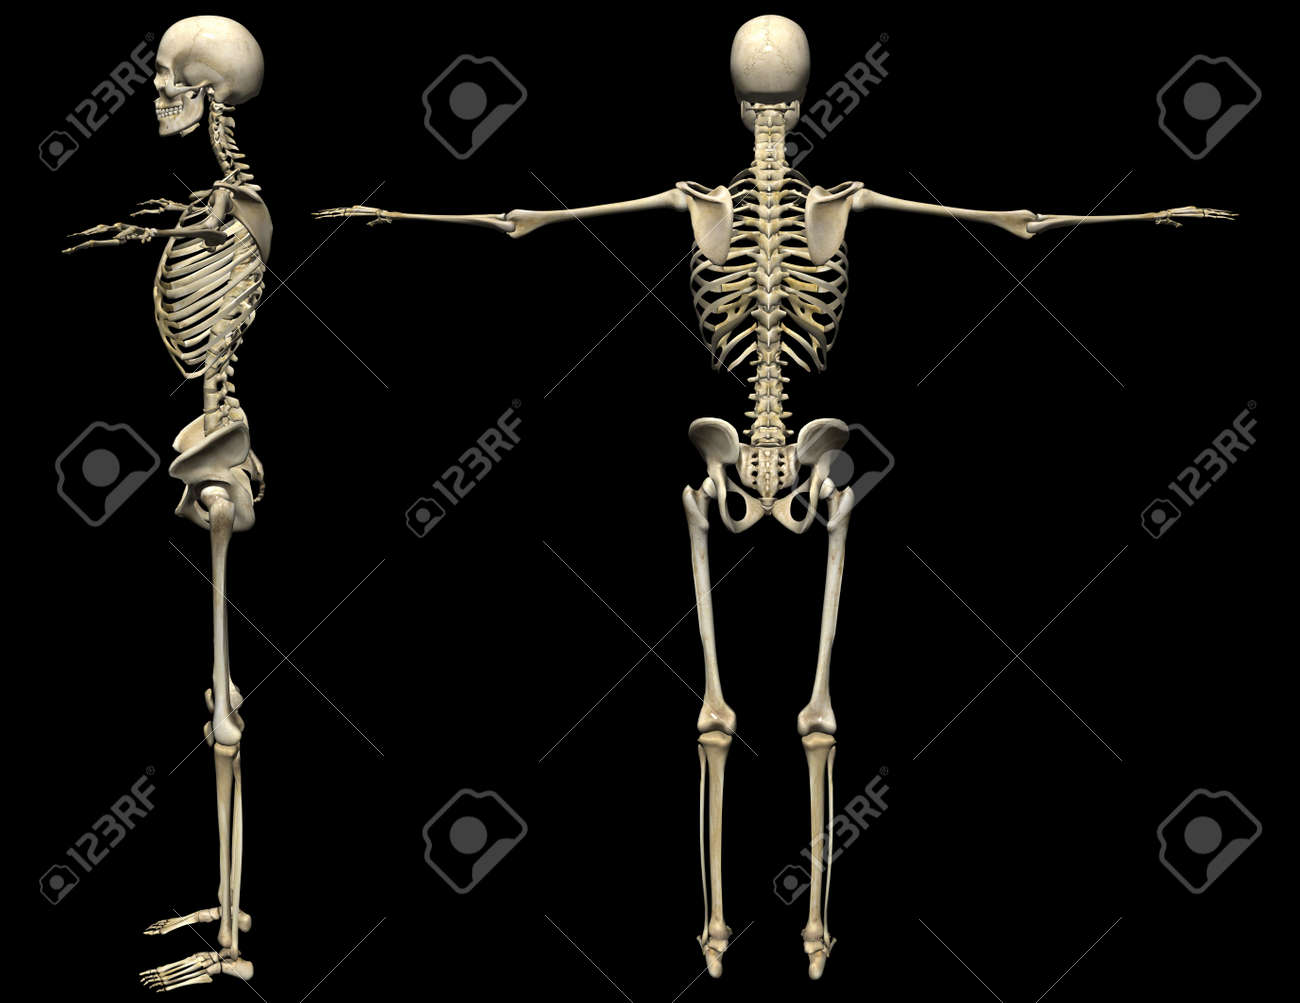 3d human skeleton medical illustration stock photo picture and